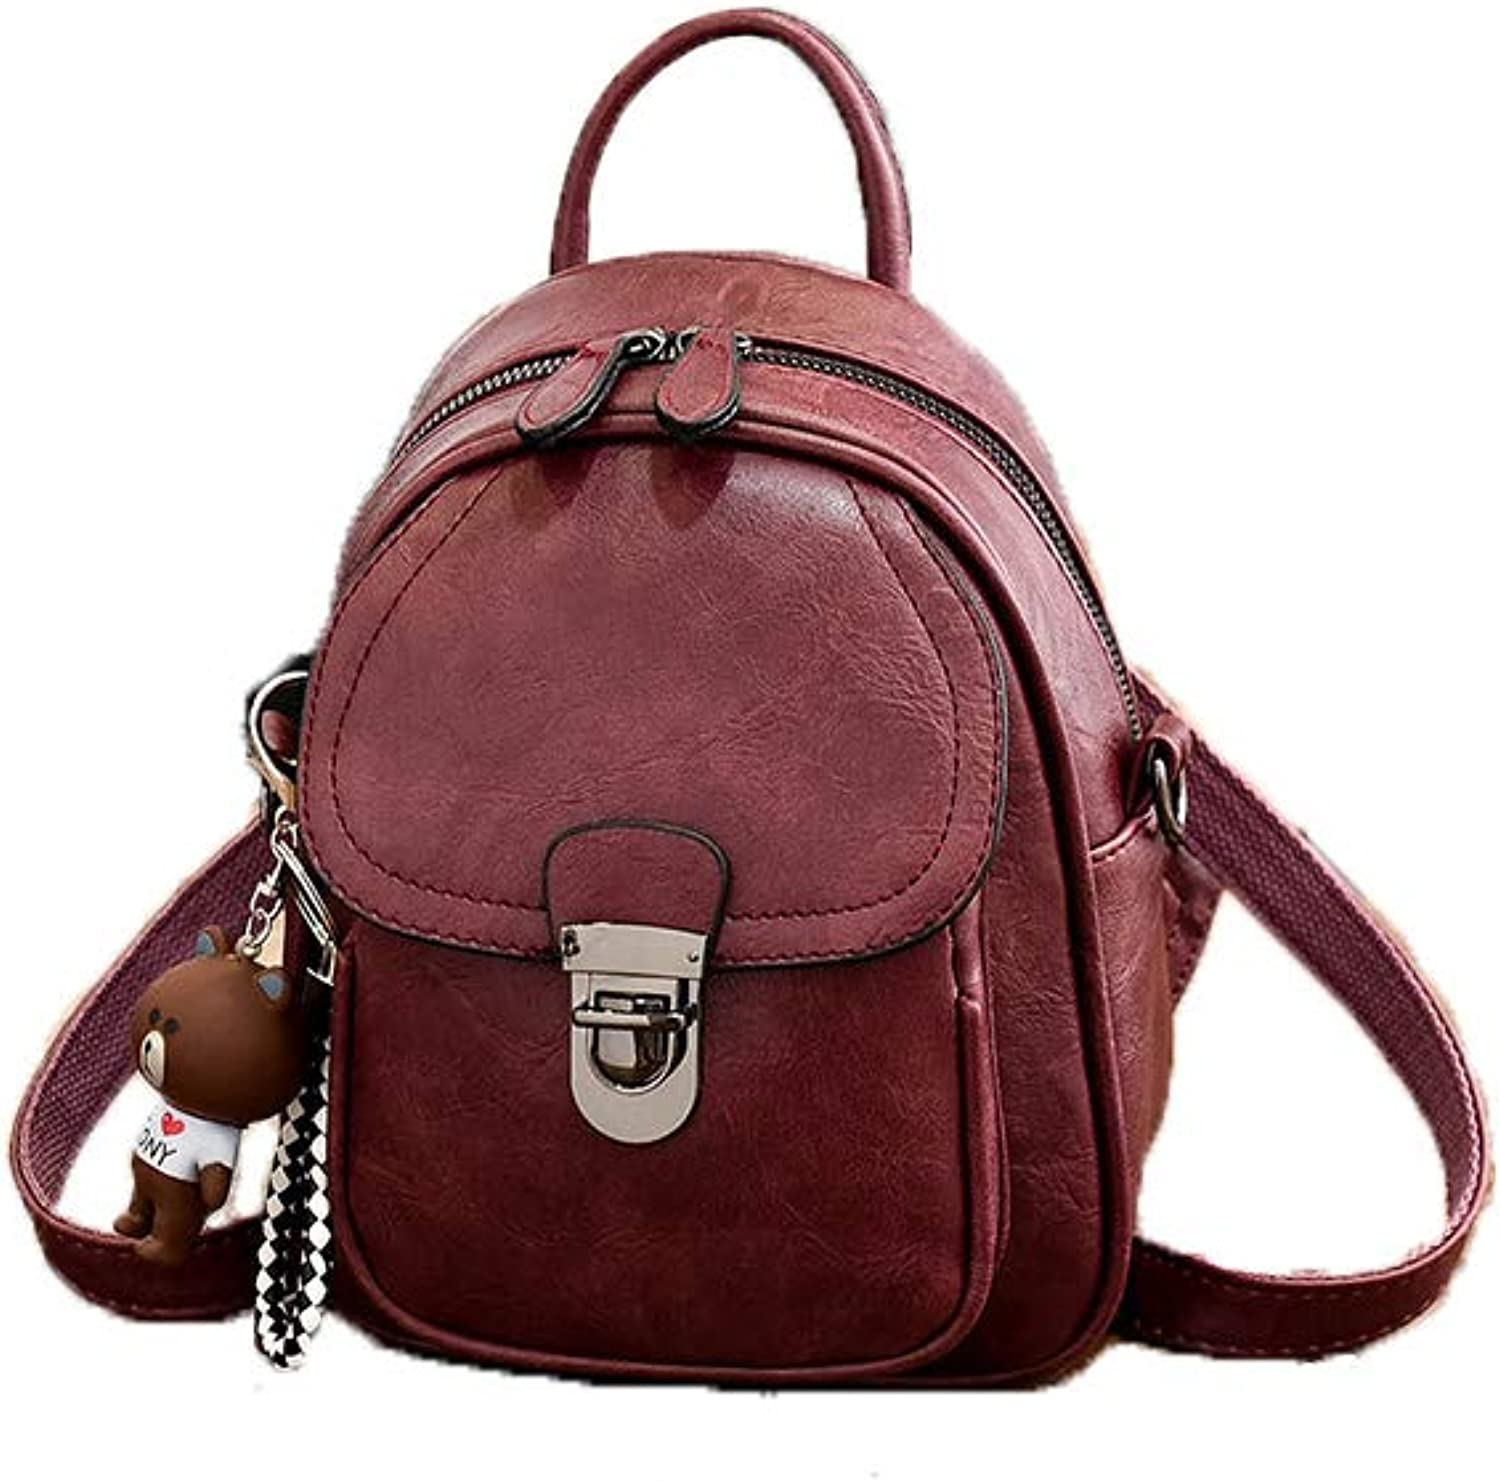 The Girl's Versatile Backpack is is is Perfect for Everyday Travel